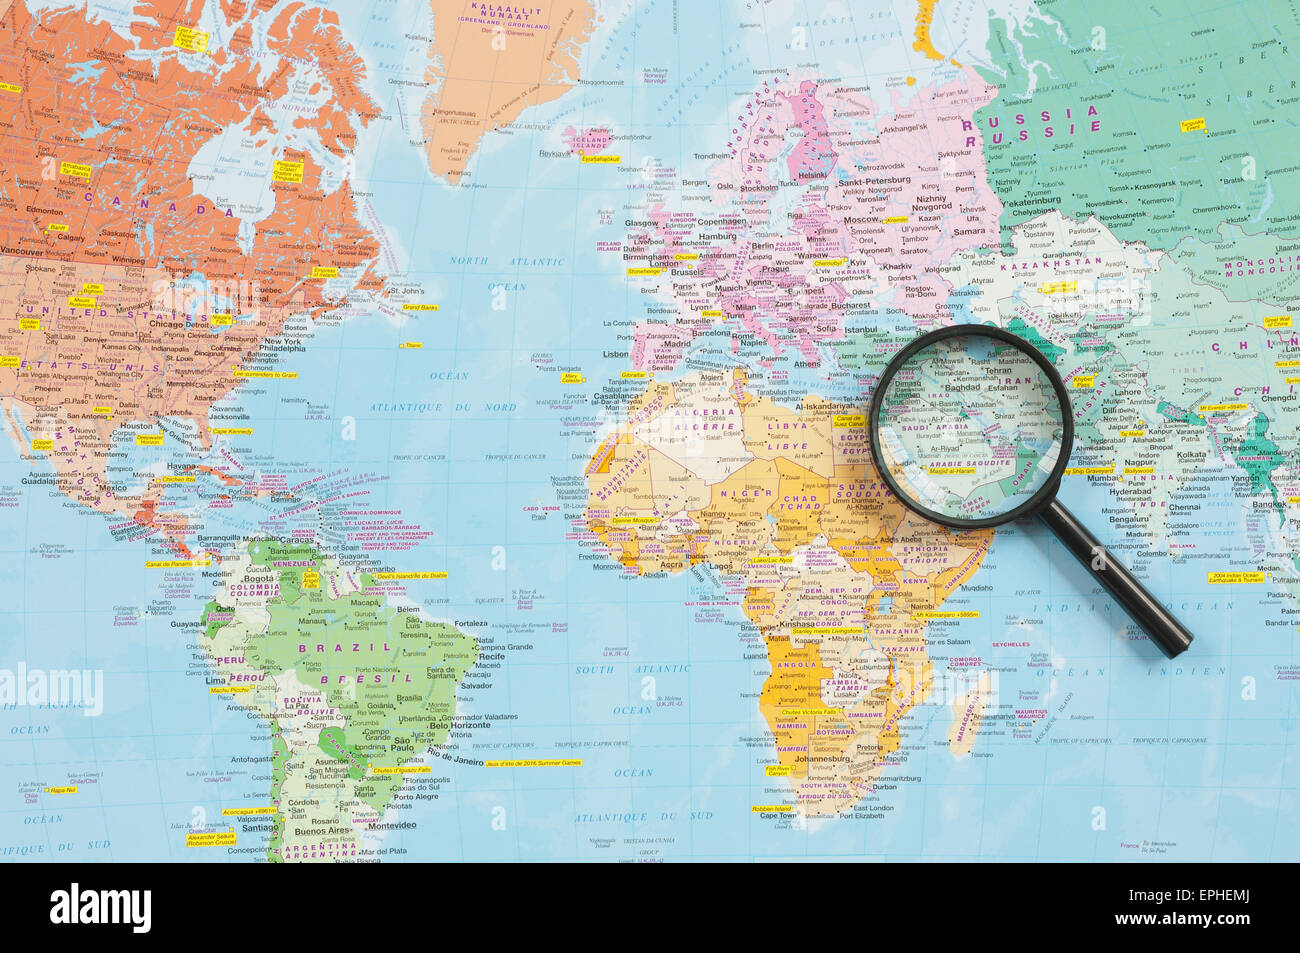 World map and magnifying glass highlighting the middle east region world map and magnifying glass highlighting the middle east region gumiabroncs Gallery